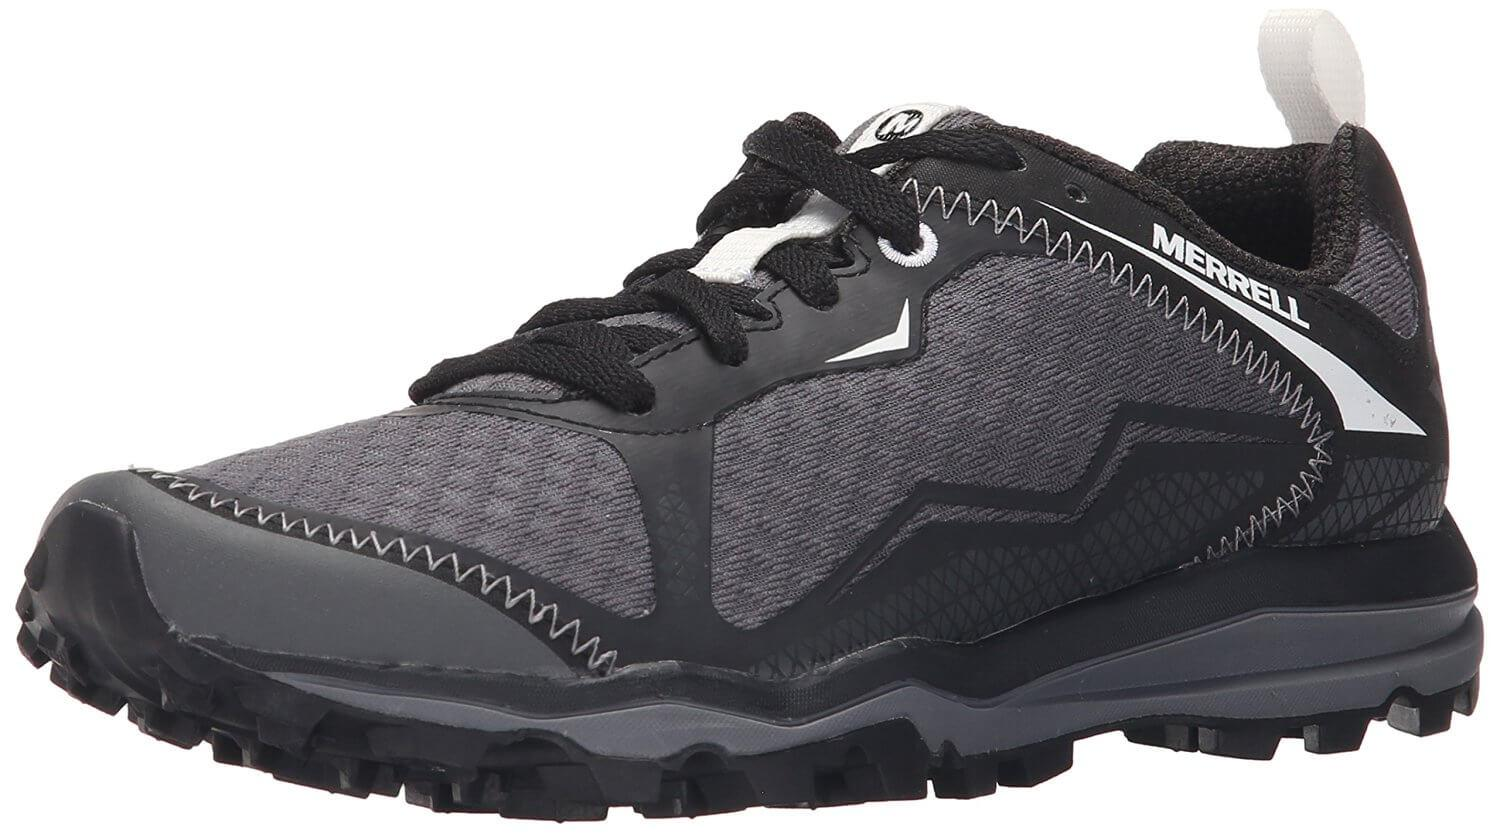 Merrell All Out Crush Light Fully Reviewed for Quality 1